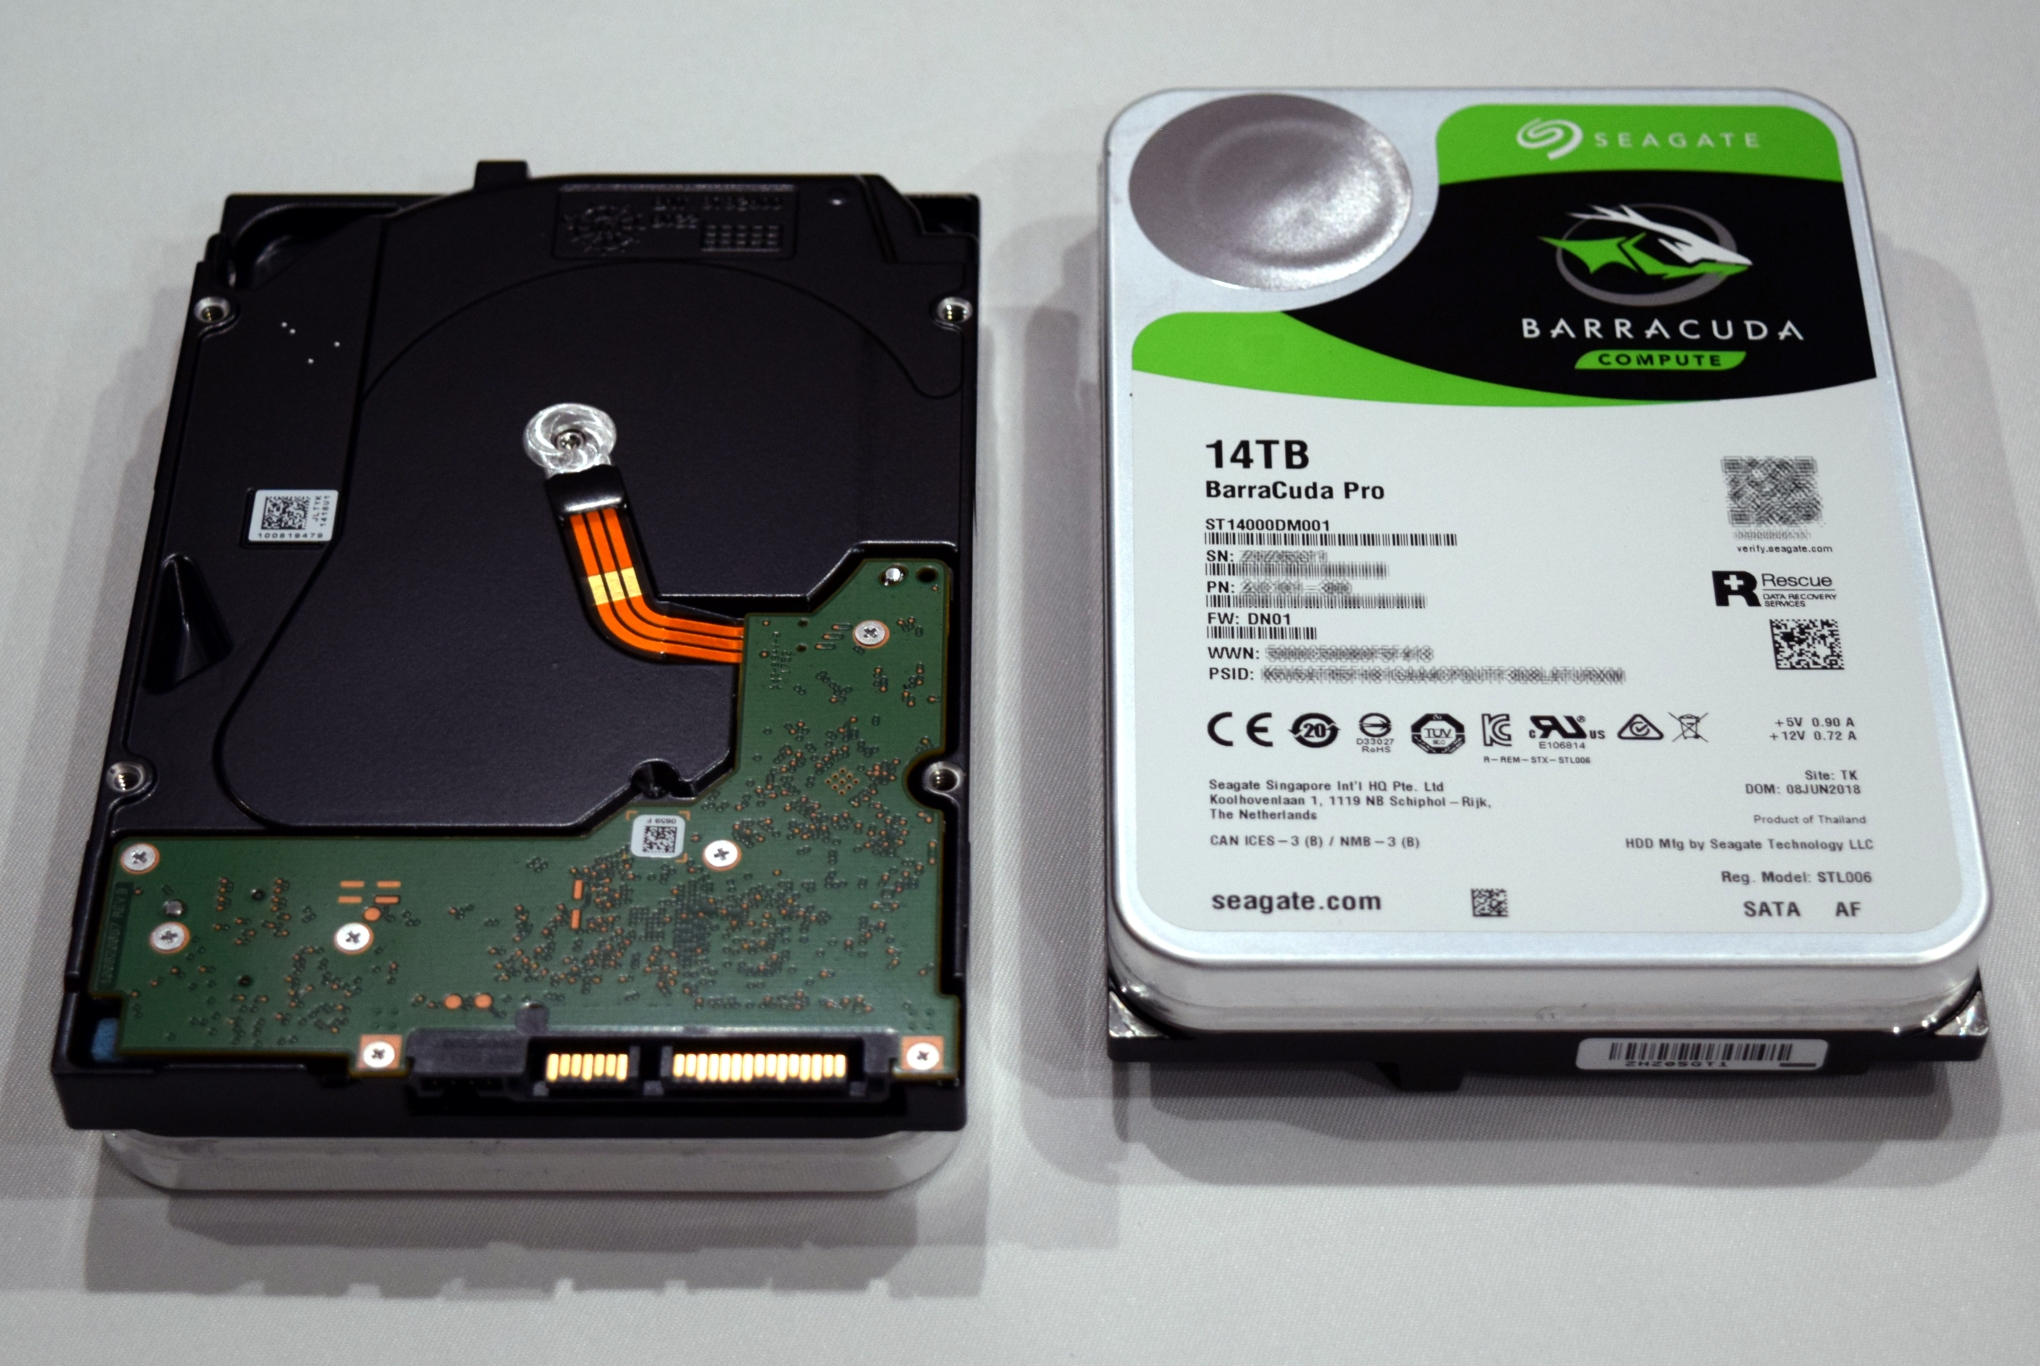 Miscellaneous Aspects and Concluding Remarks - Seagate